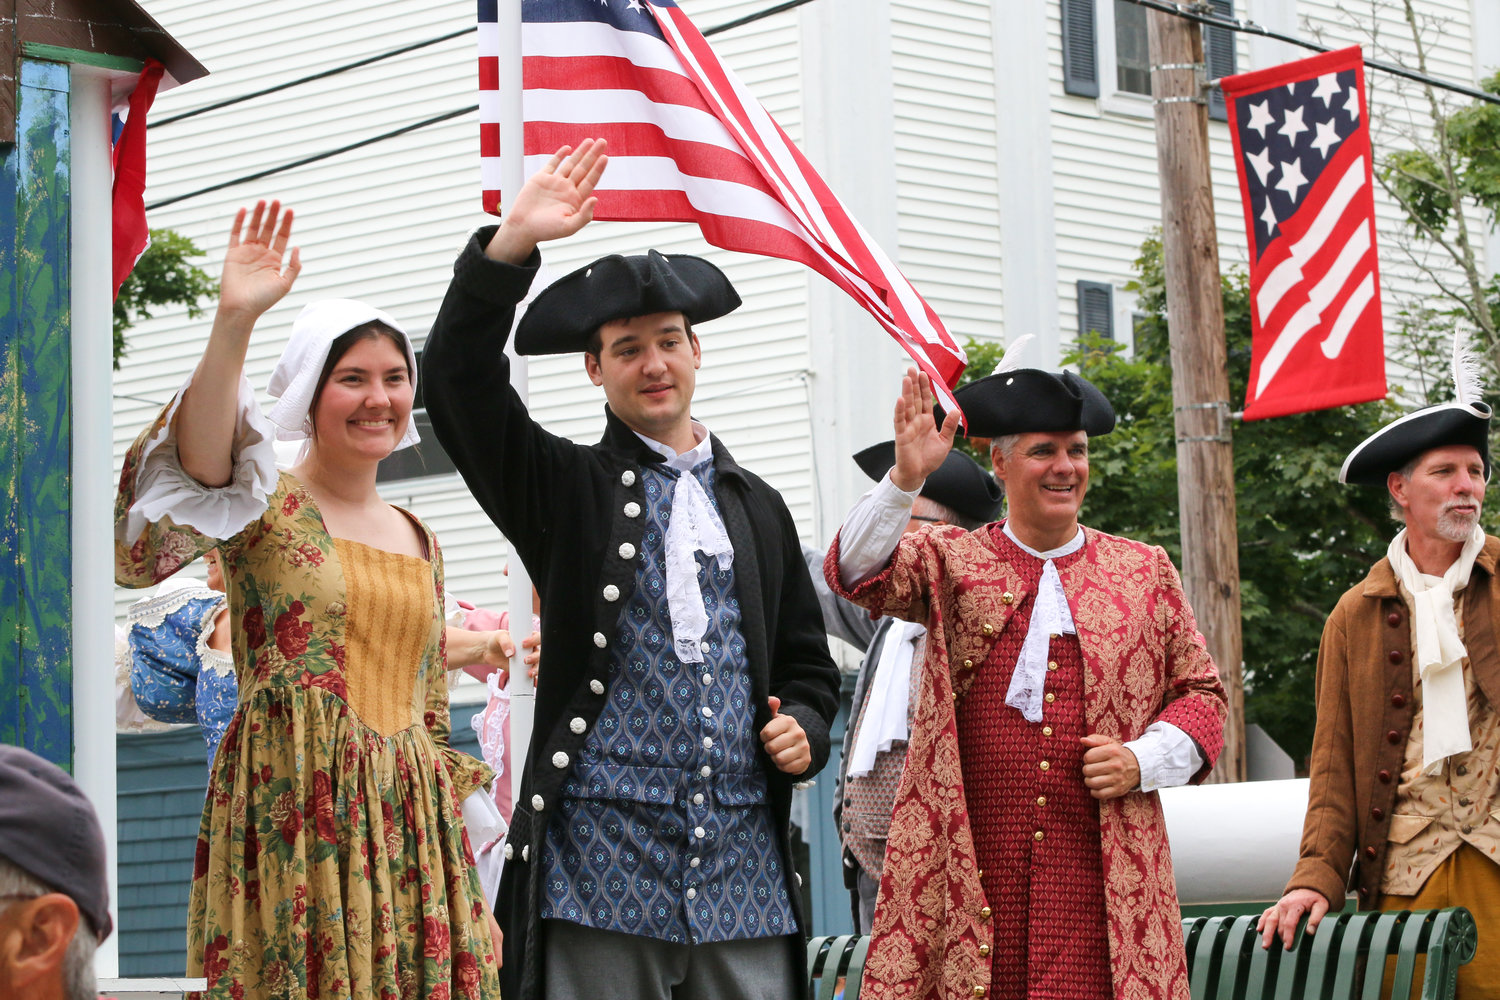 The Bristol parade is the oldest in the country